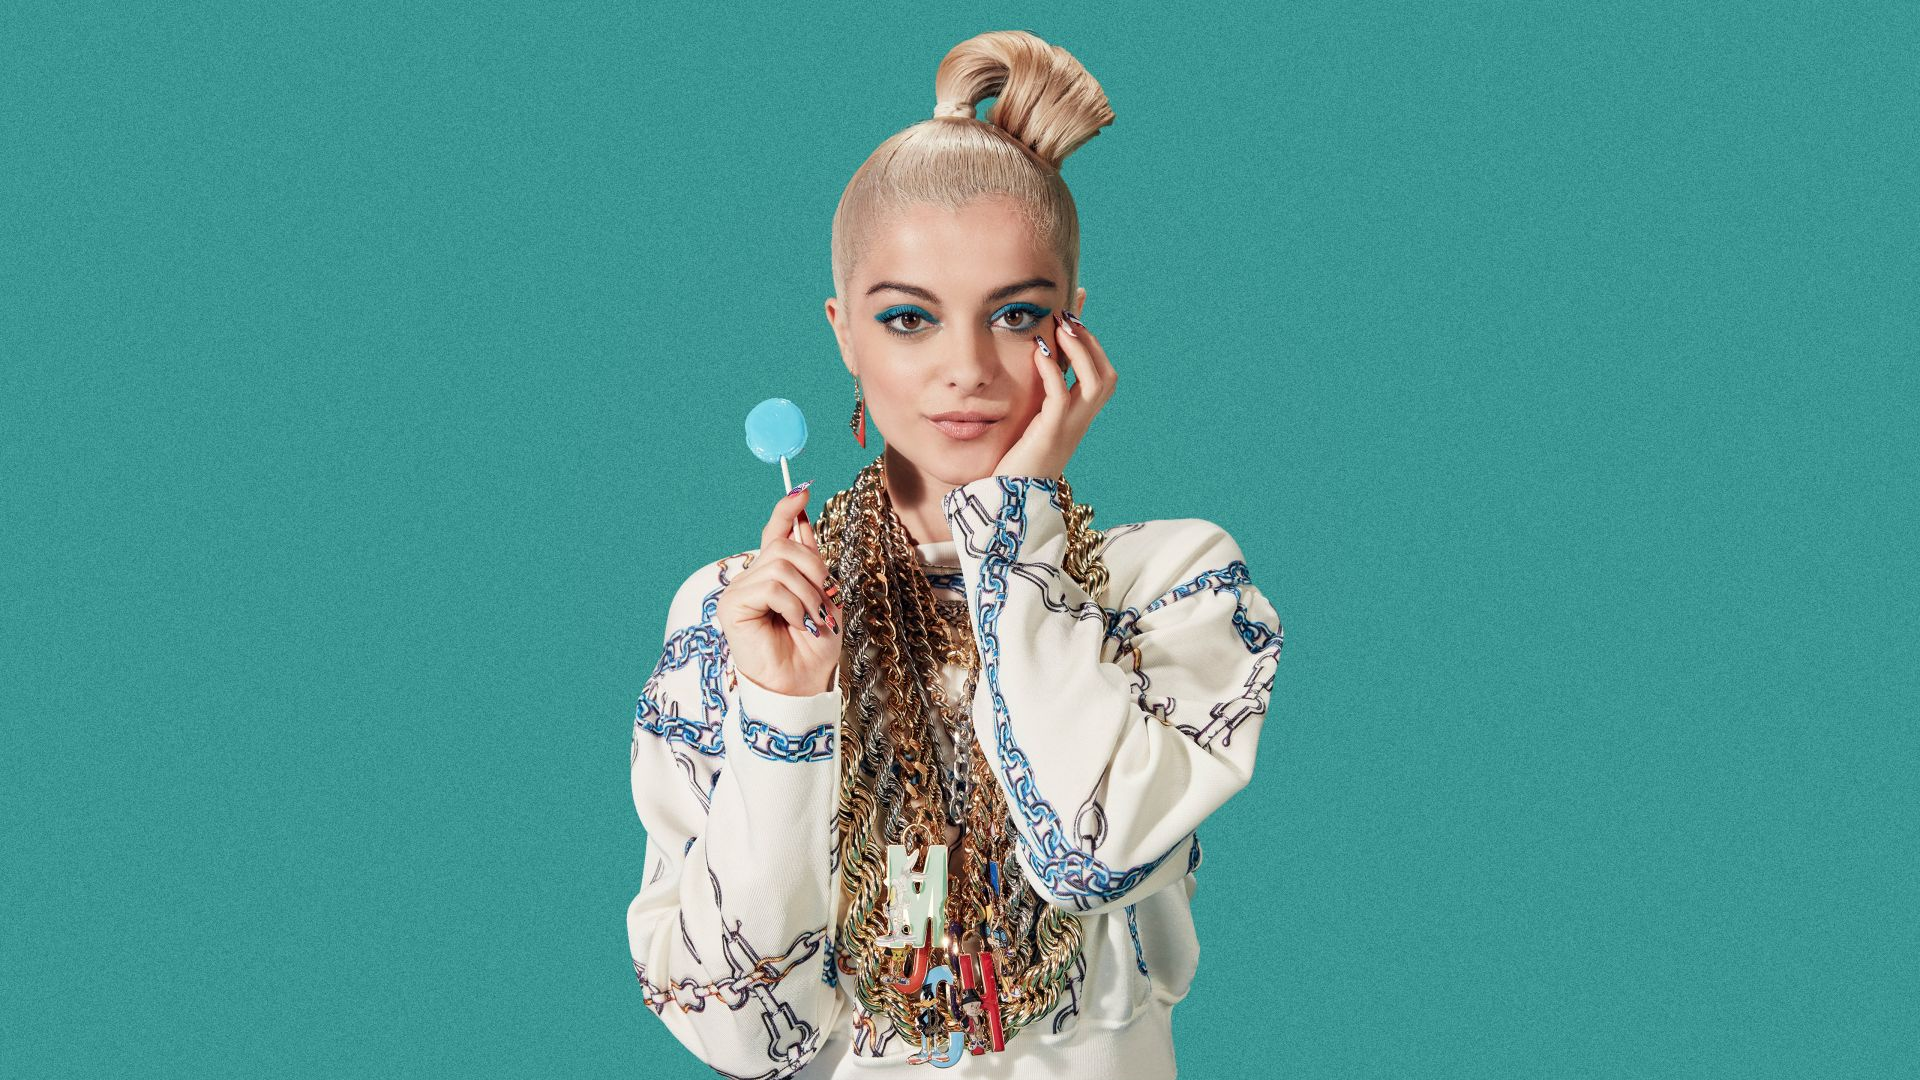 Bebe Rexha, photo, 5k (horizontal)